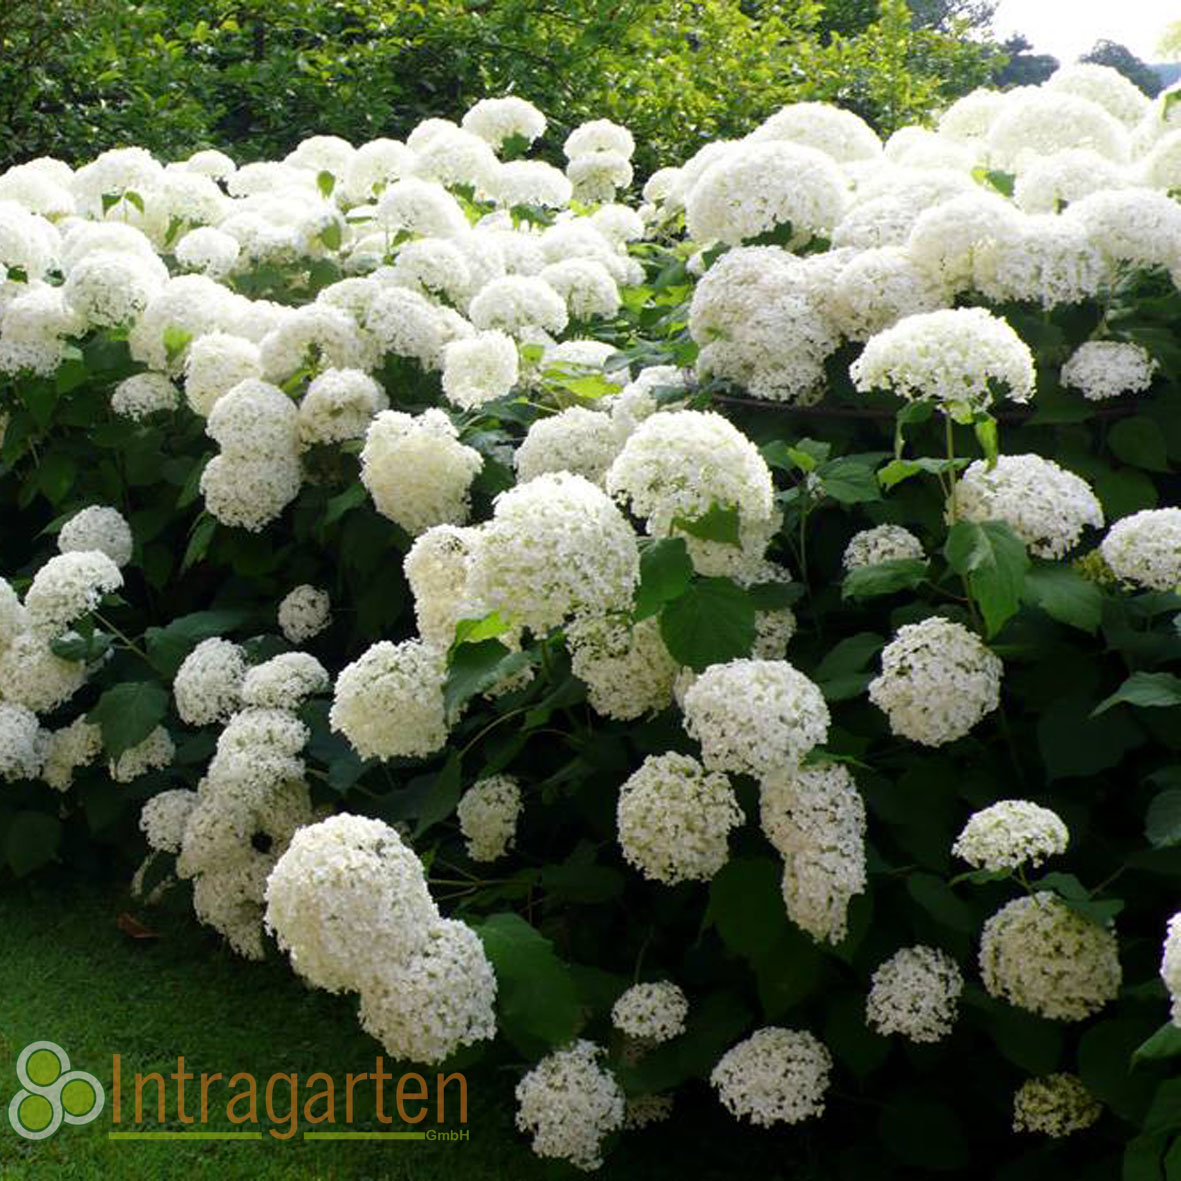 schneeball hortensie hydrangea annabelle im topf riesige. Black Bedroom Furniture Sets. Home Design Ideas